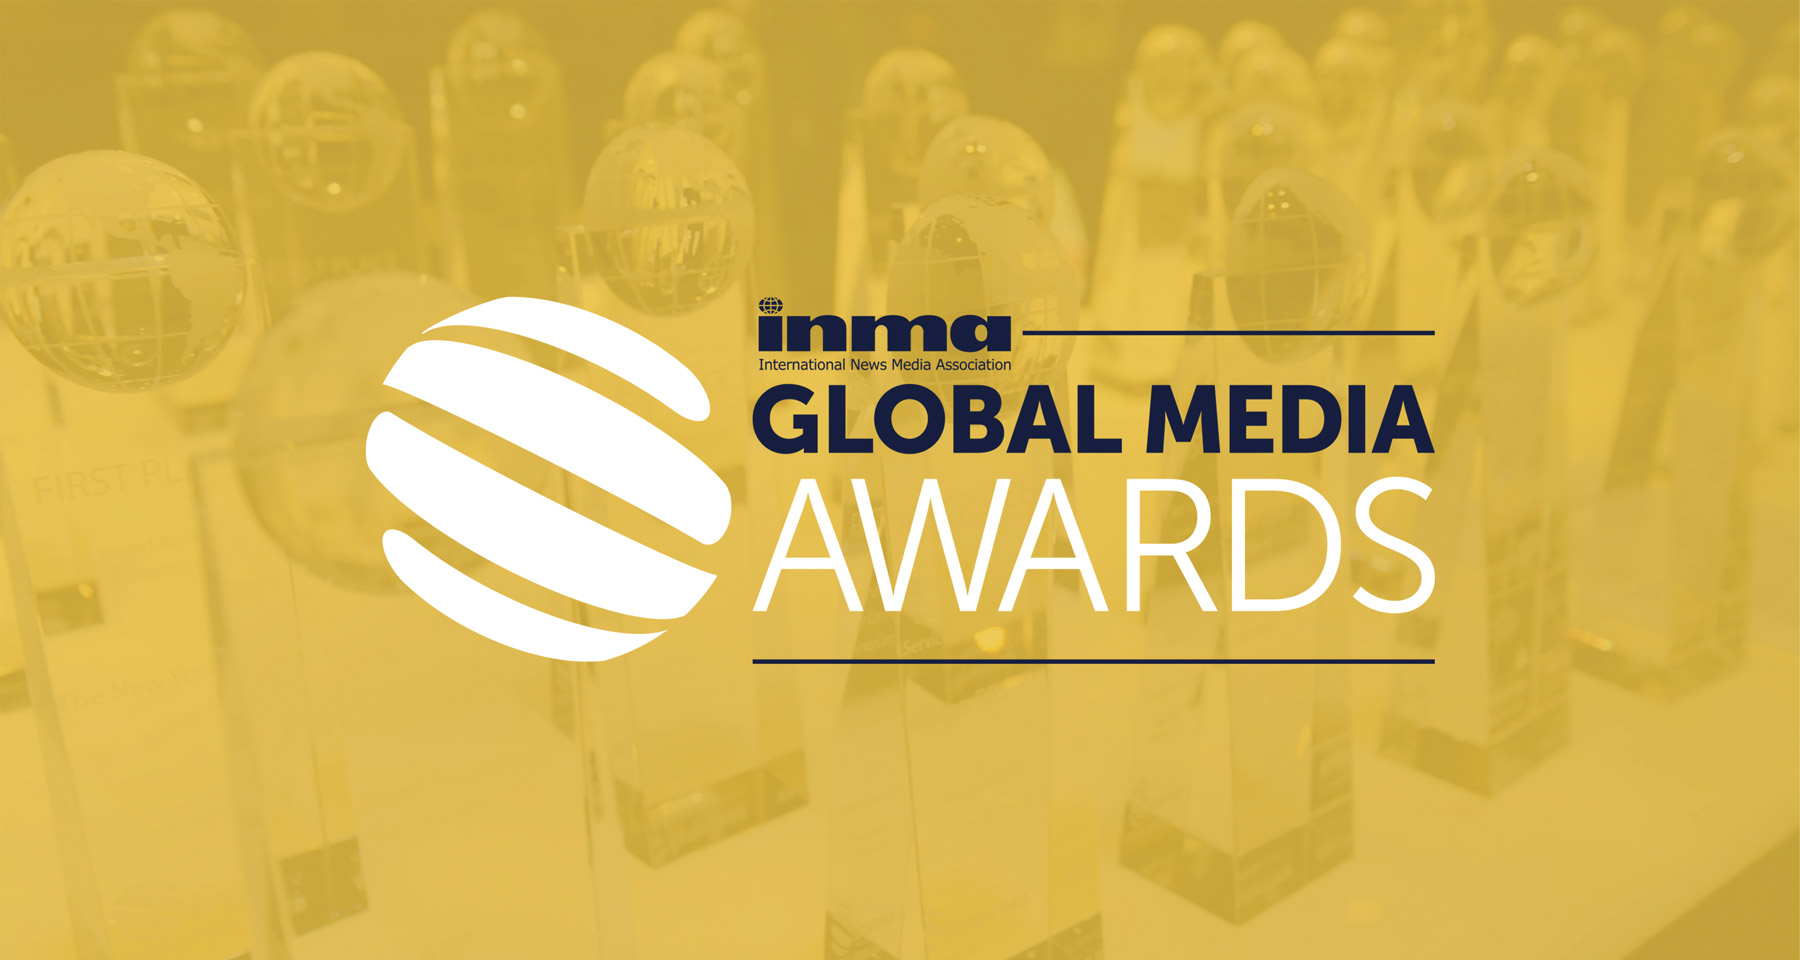 INMA Global Media Awards product wins demonstrate its strategic importance